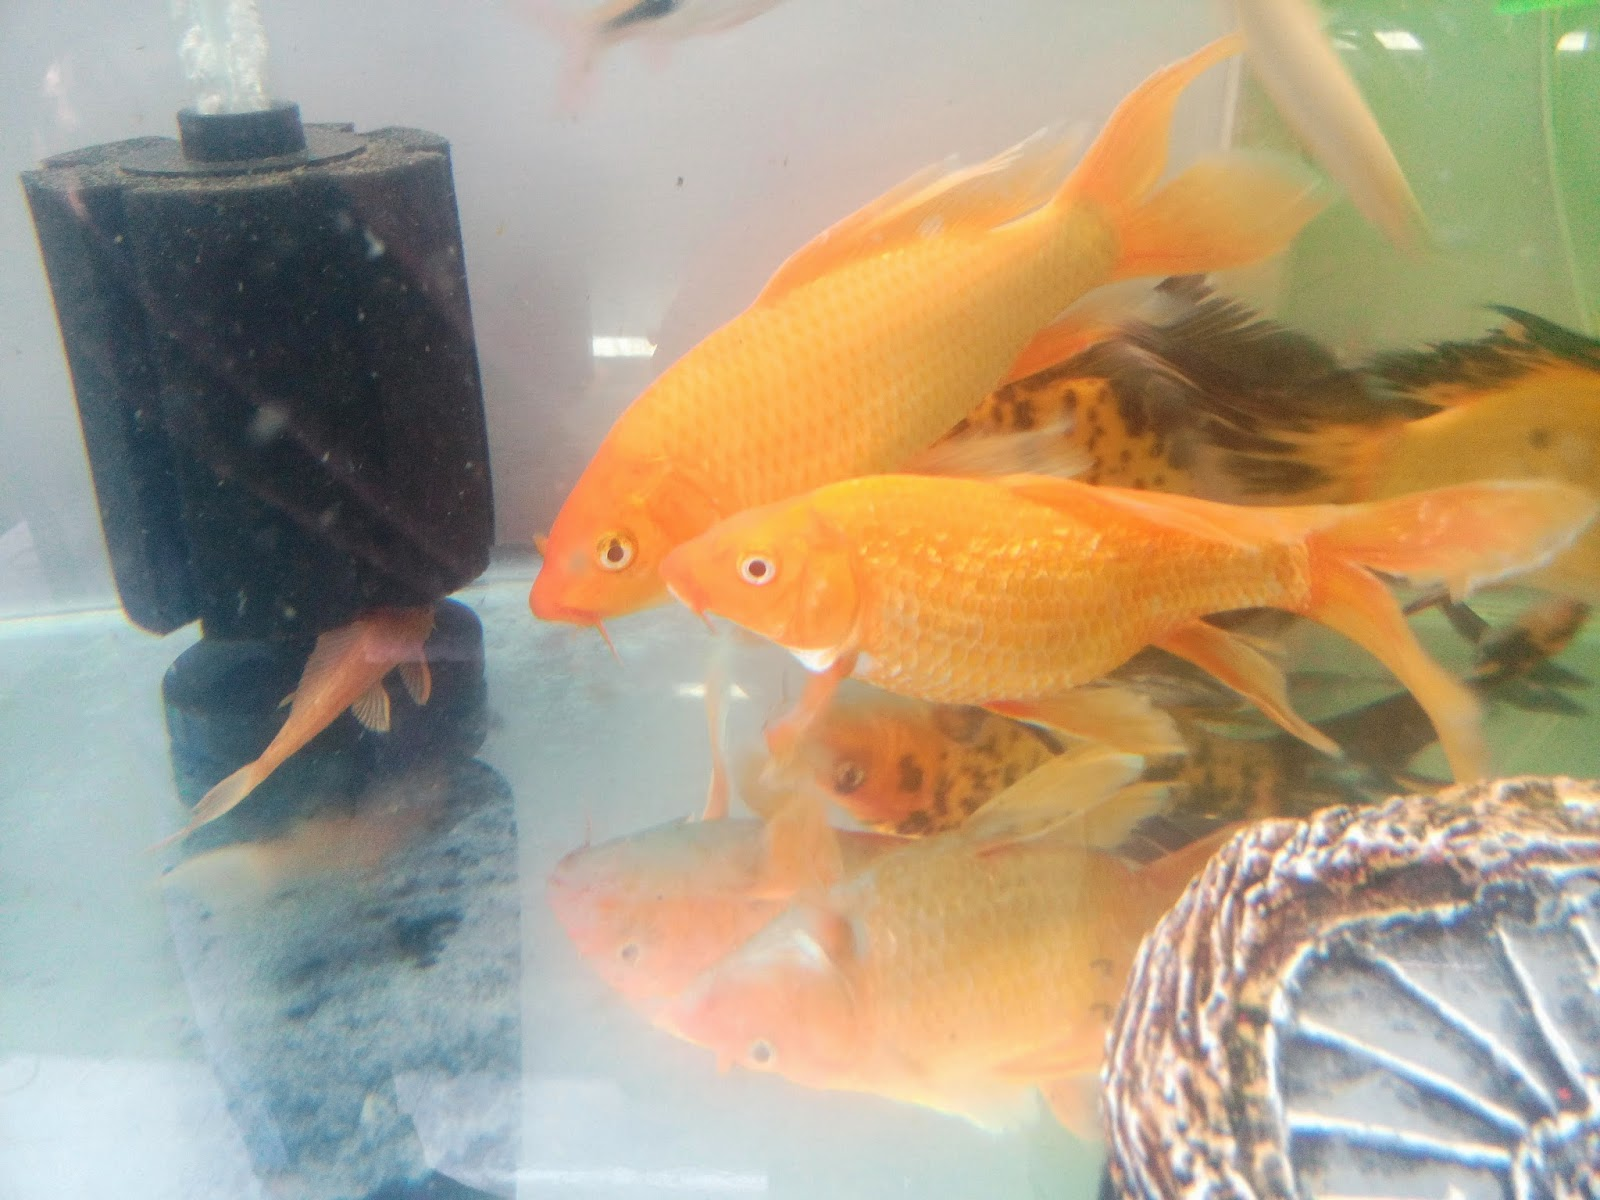 Joe 39 s aquaworld for exotic fishes mumbai india 9833898901 for Koi fish tail